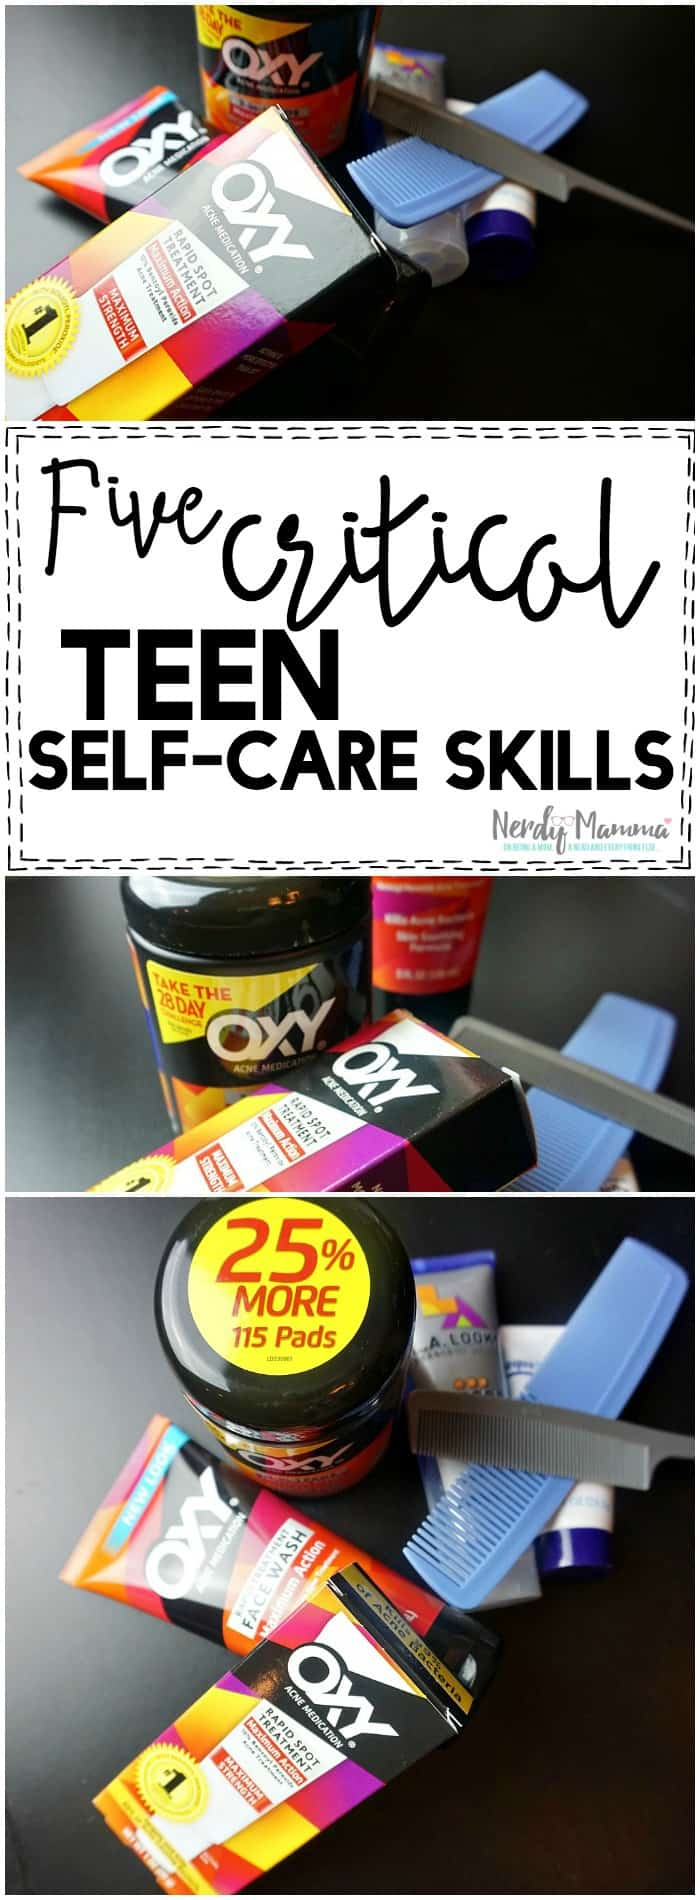 Oh, man, this mom nails it on the head--these are the top 5 Critical Teen Self-Care Skills that they need to know!